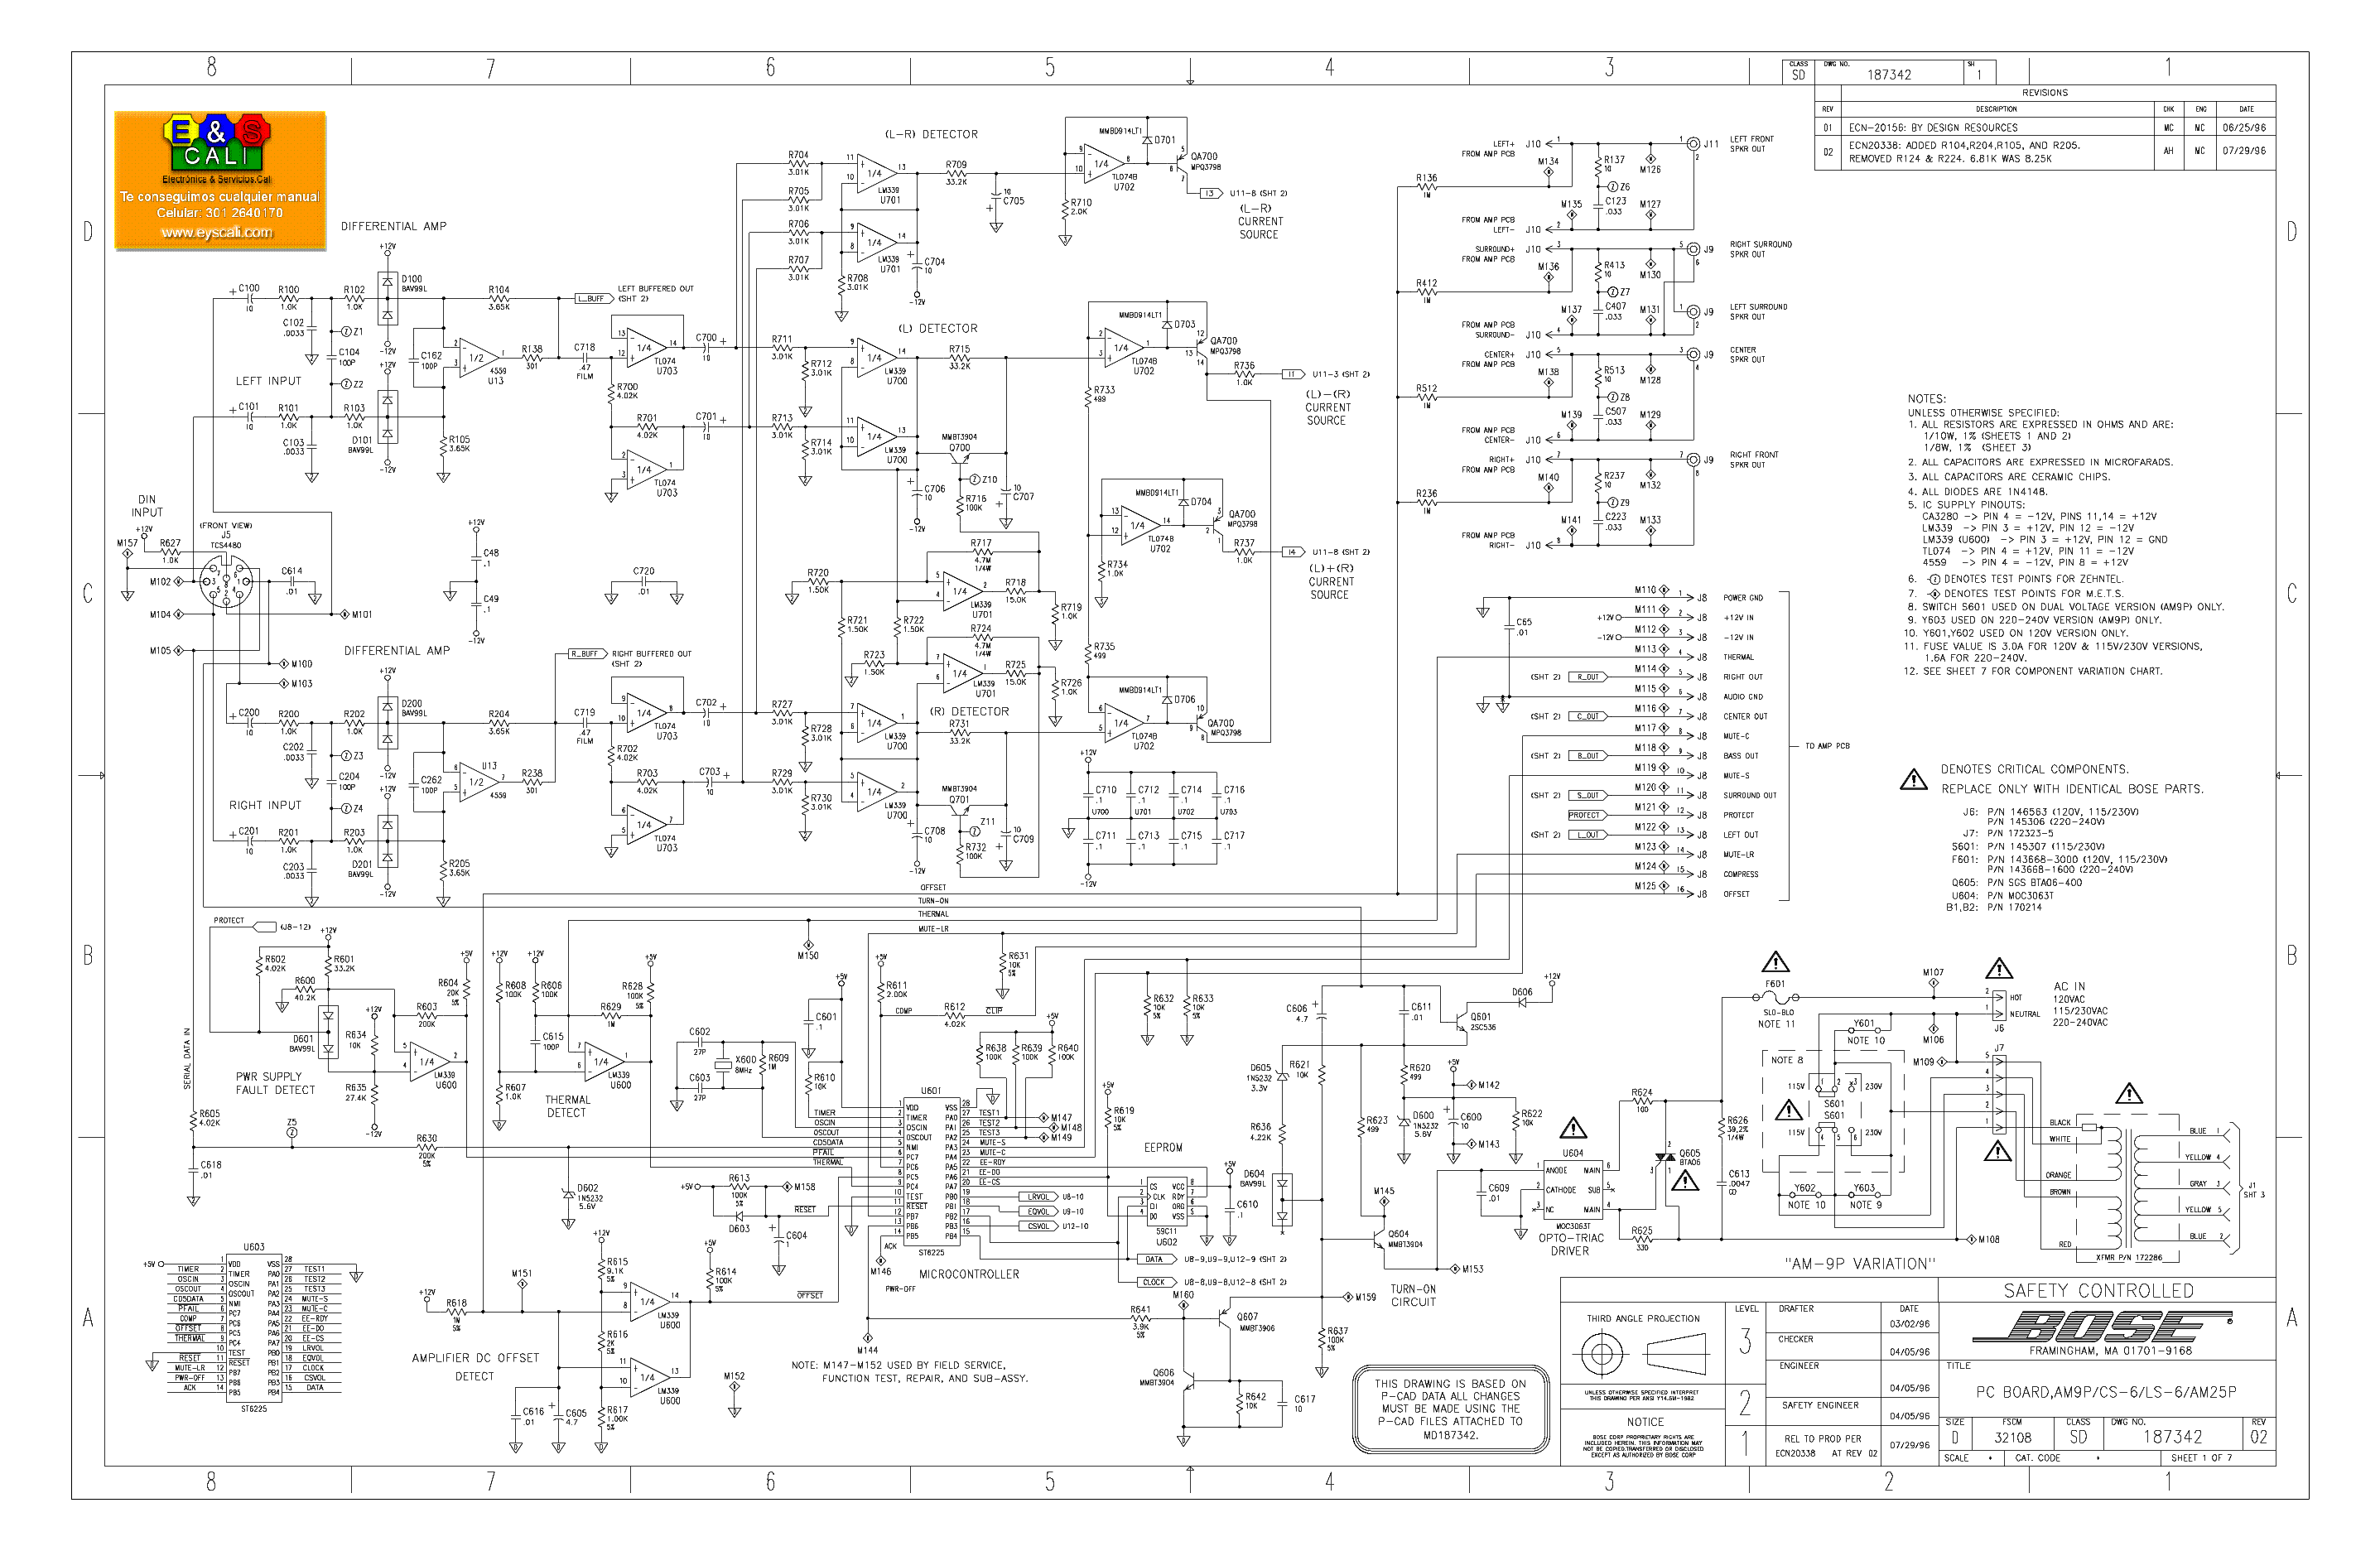 Bose Lifestyle 5 Wiring Diagram : 31 Wiring Diagram Images